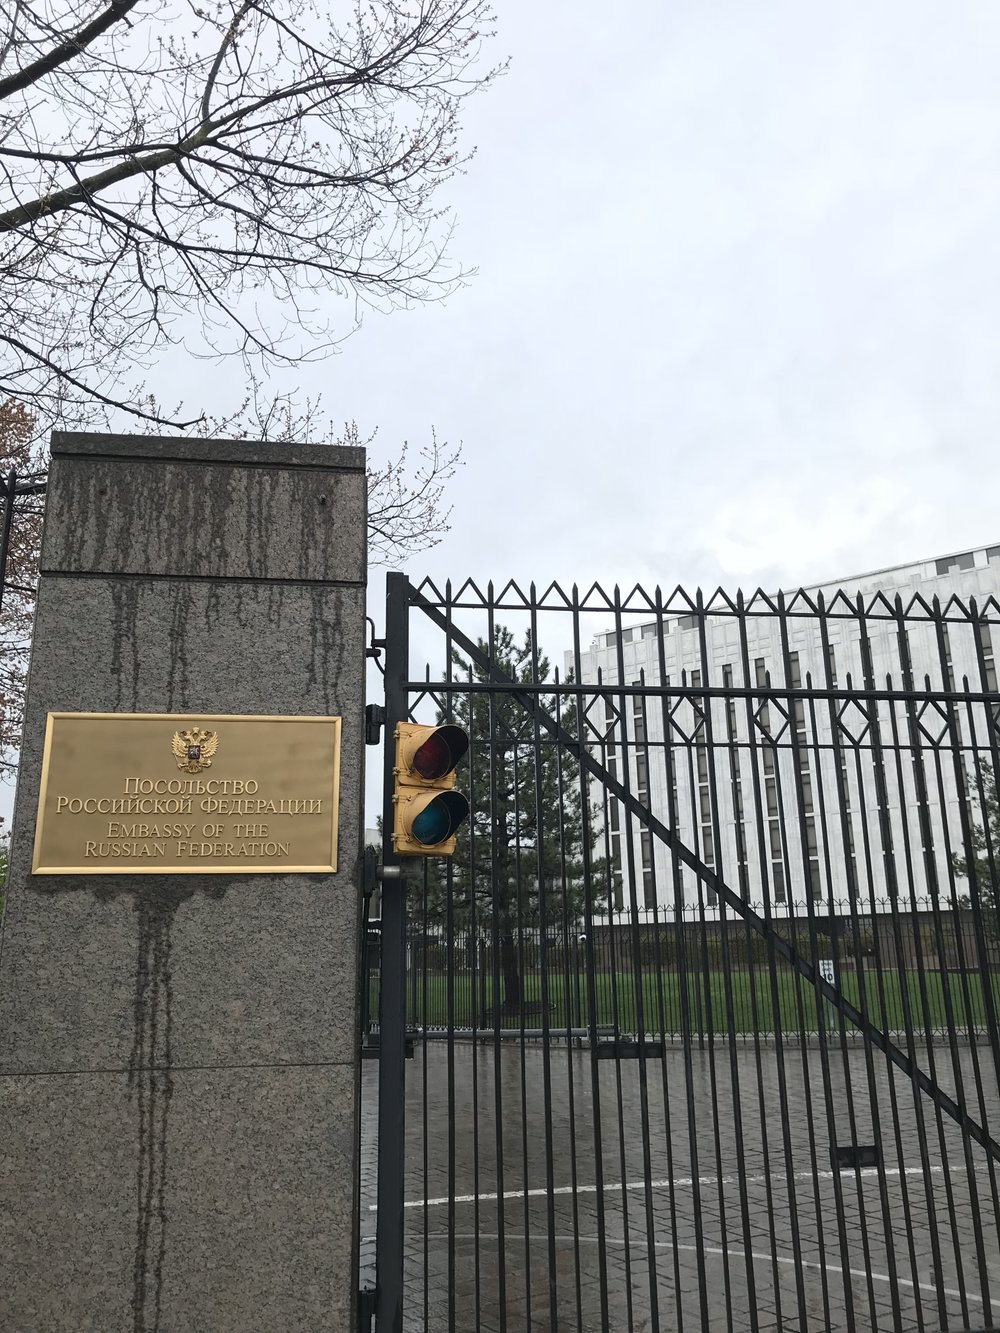 The Embassy of the Russian Federation.